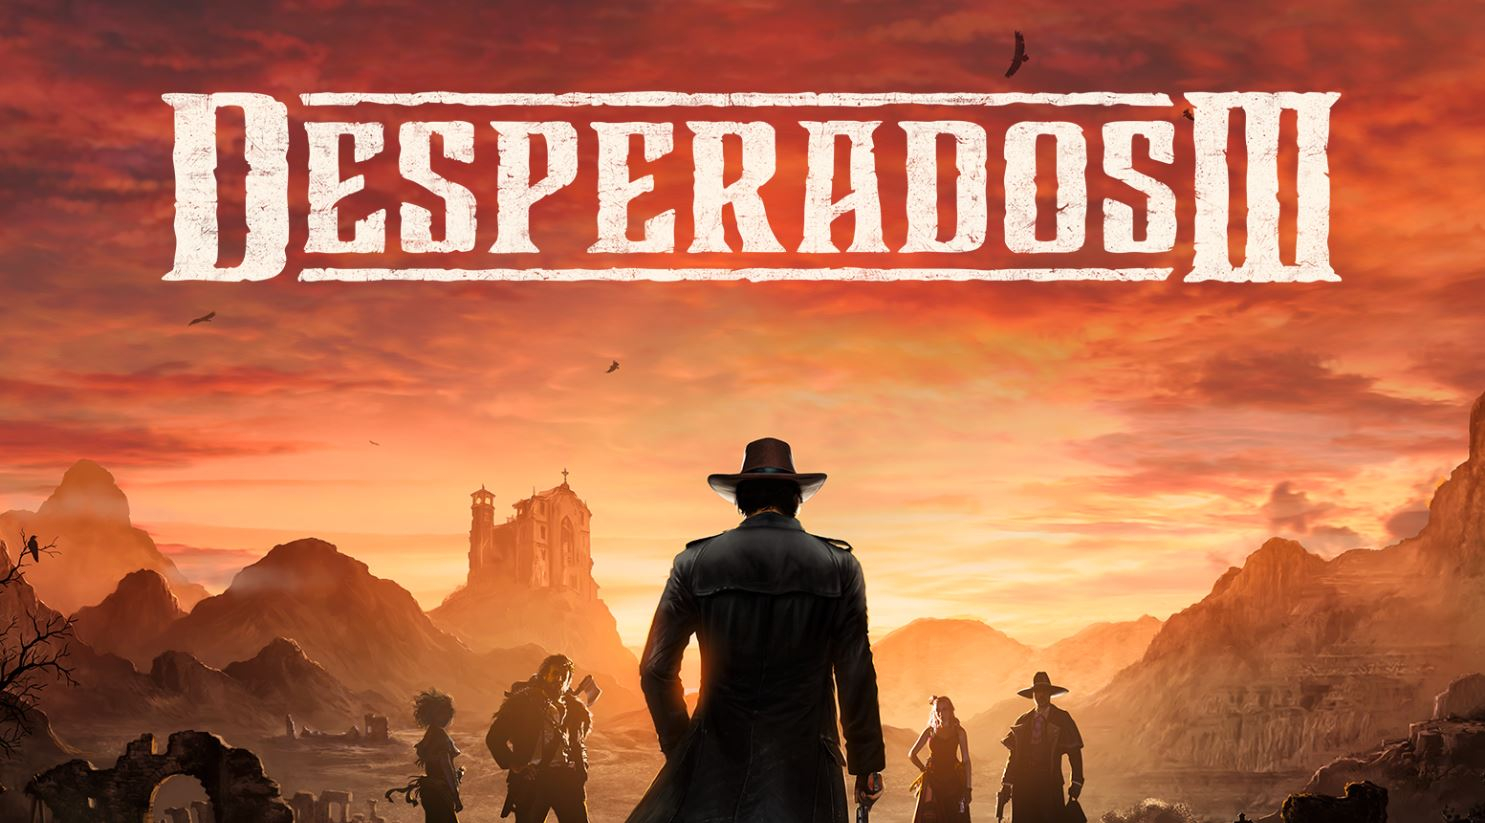 Desperados Iii Retains The Spirit Of The Originals And Plays Surprisingly Well On A Controller